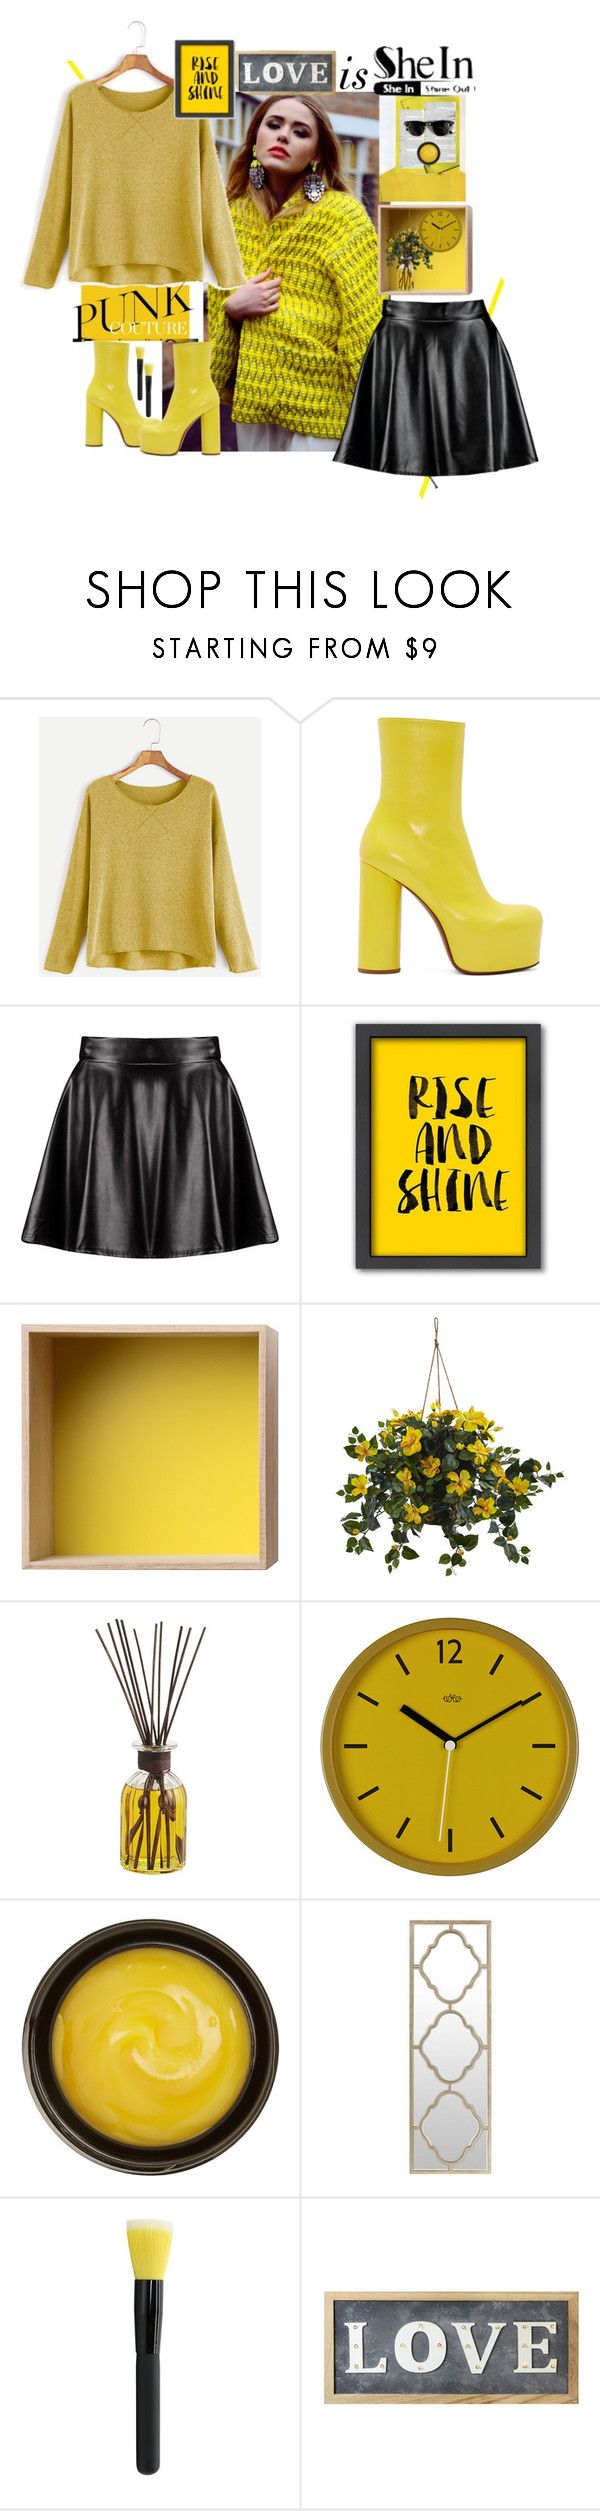 """""""Shein contest"""" by luanna98 ❤ liked on Polyvore featuring Vetements, Boohoo, Americanflat, Muuto, Nearly Natural, Pier 1 Imports, Ray-Ban, Wild & Wolf, de Mamiel and Surya"""